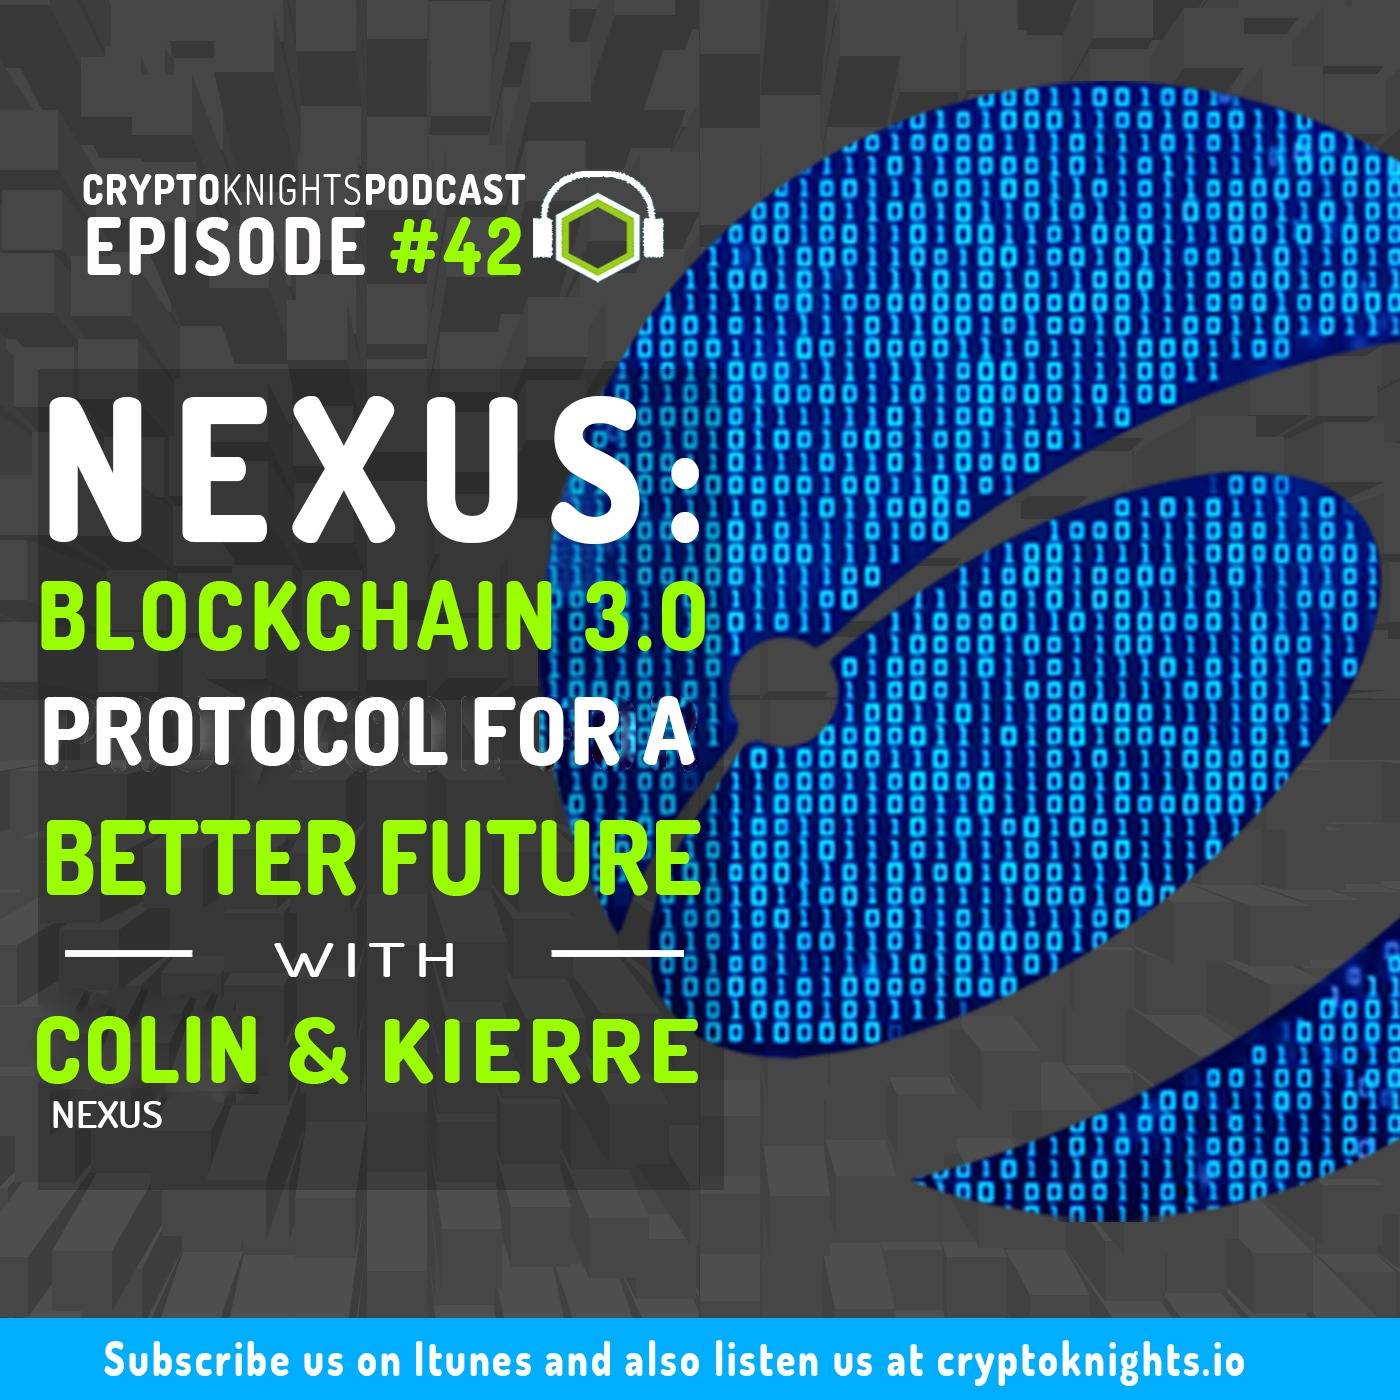 Episode 42- Nexus: Blockchain 3 0 Protocol For A Better Future